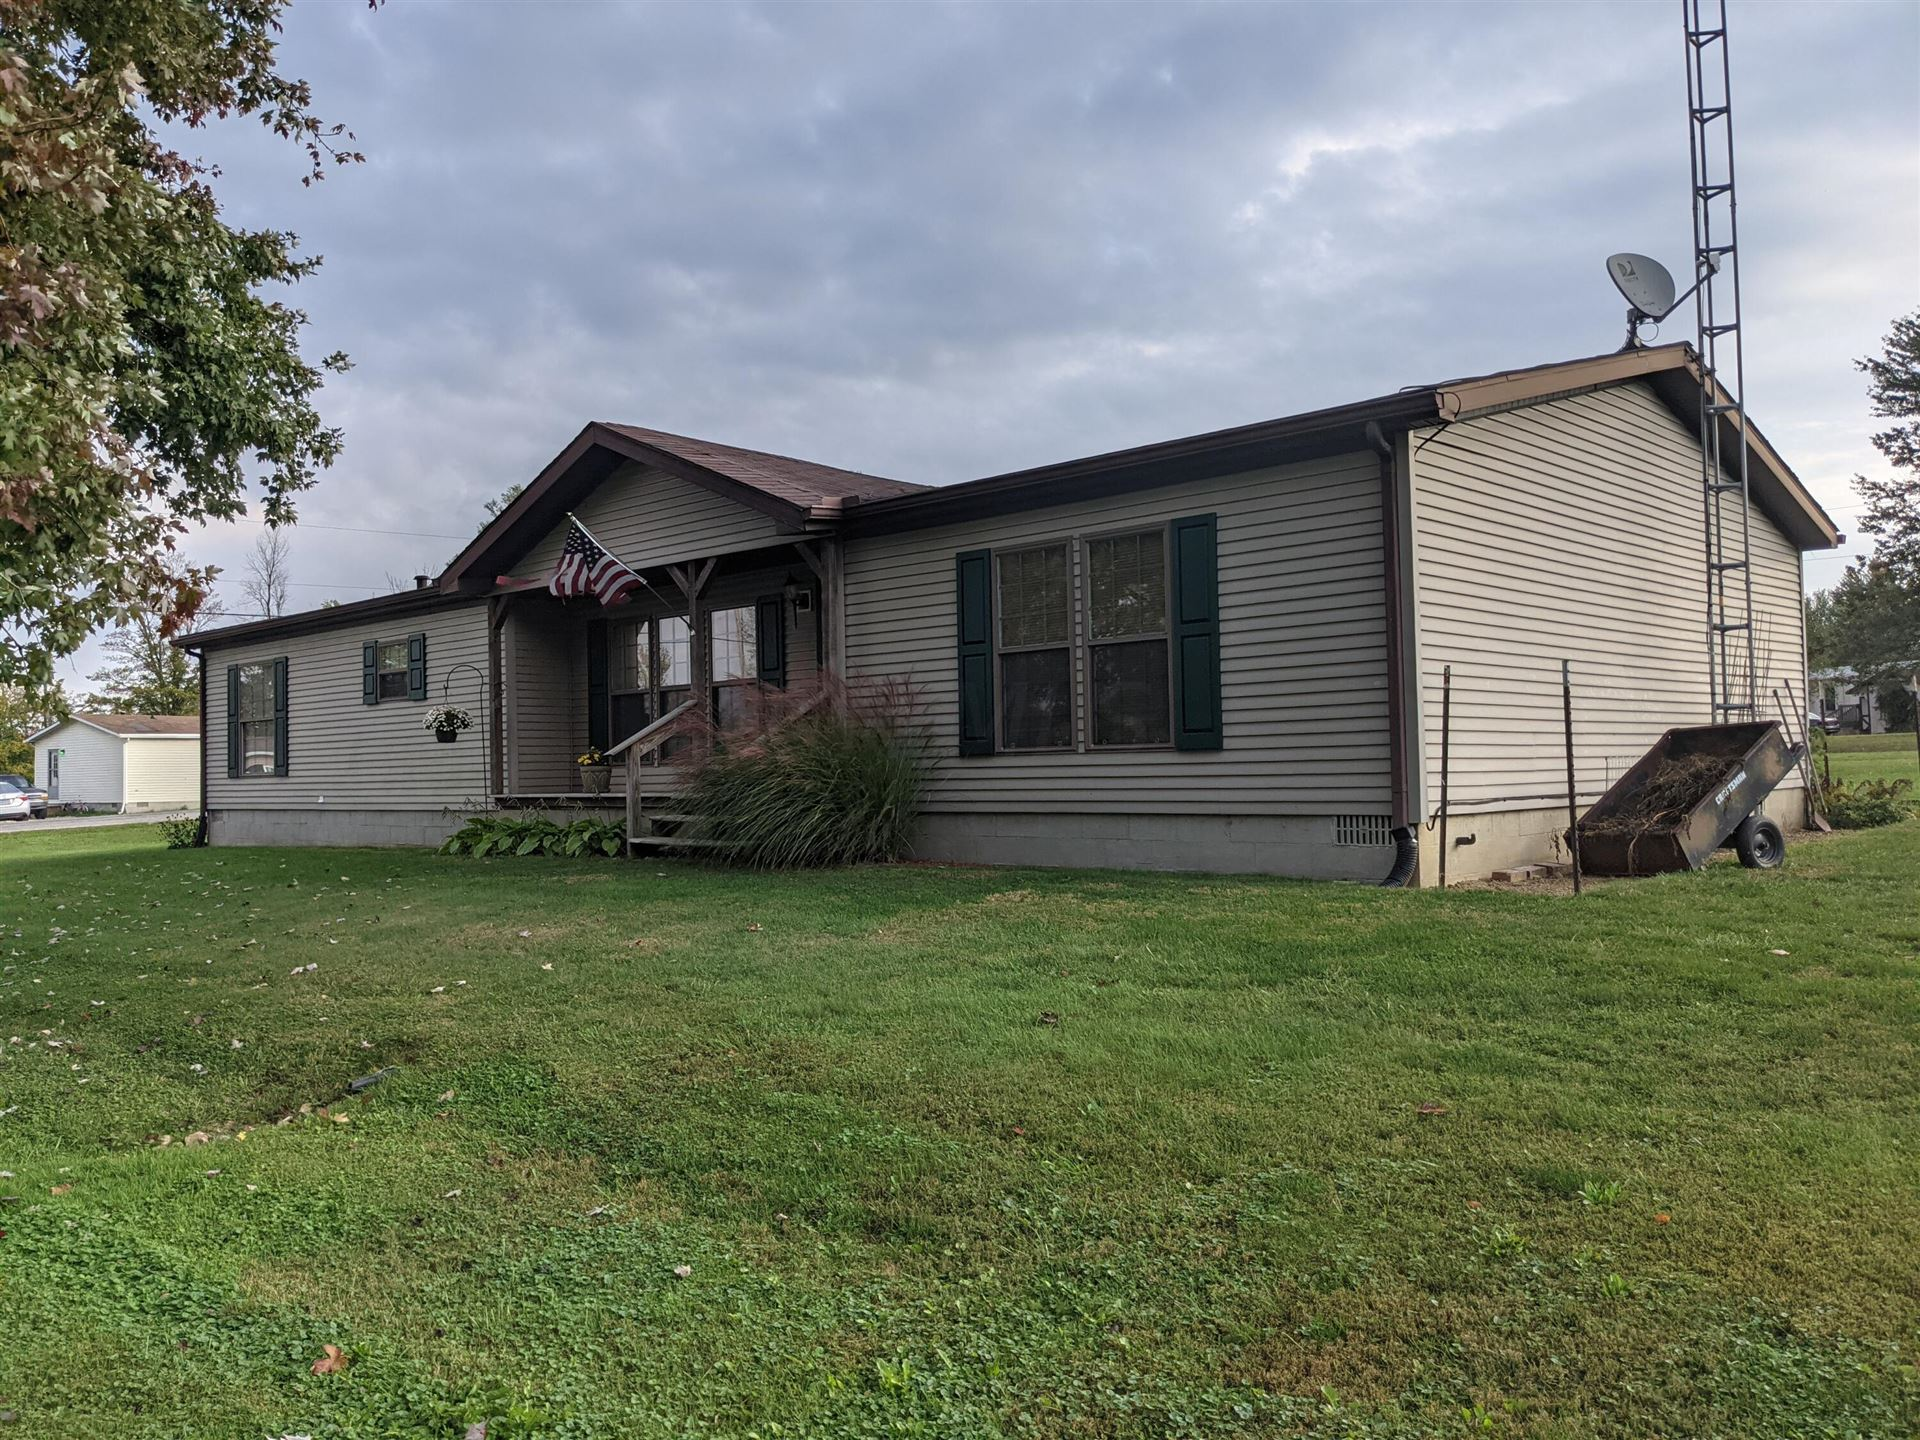 Photo of 7326 State Route 19 #Unit 6, Lots 208-211, Mount Gilead, OH 43338 (MLS # 221040967)